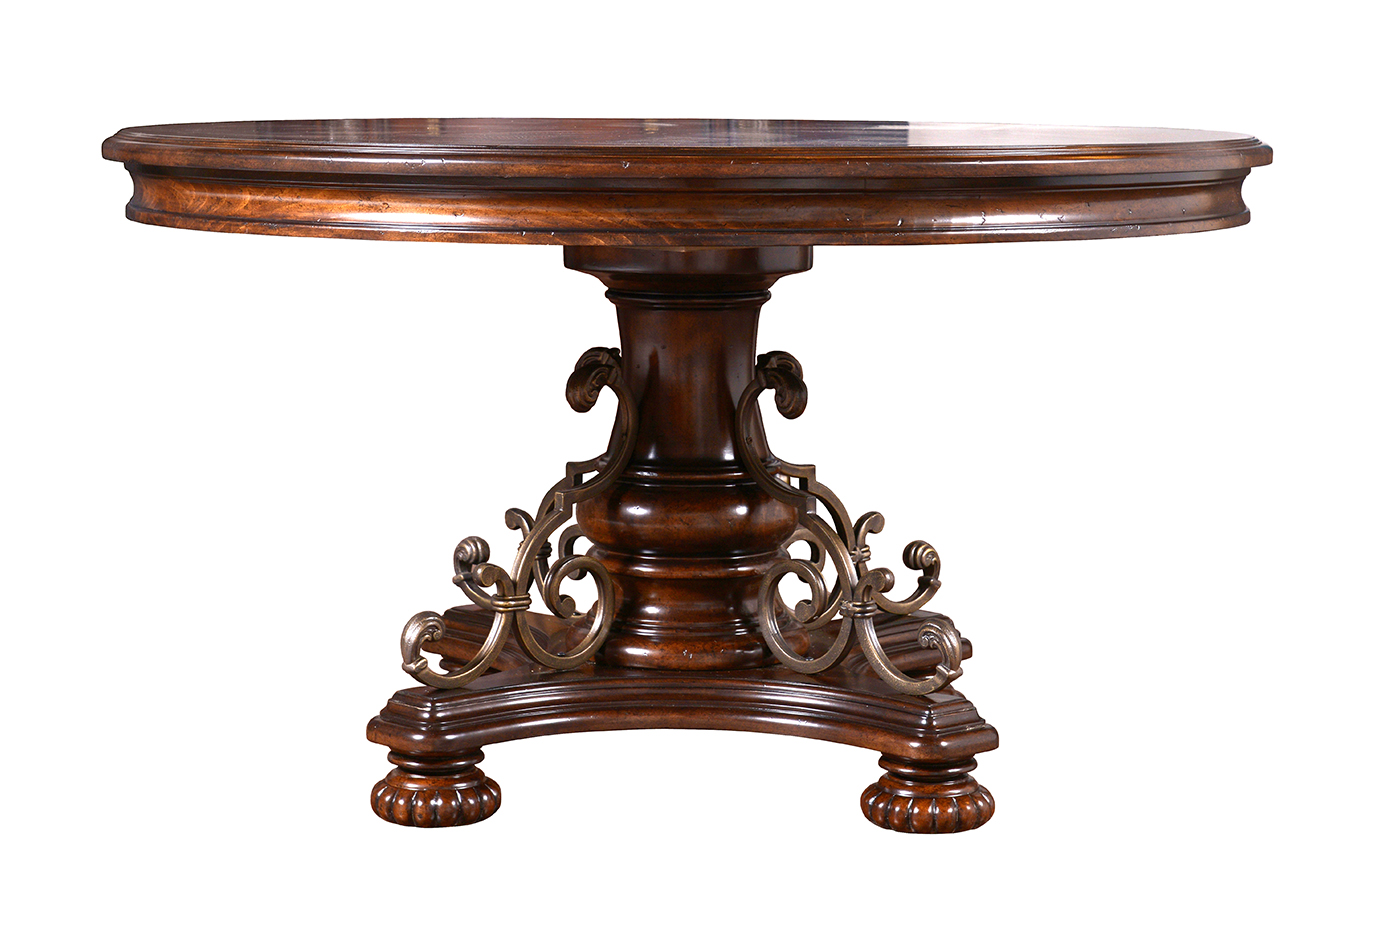 antique round dining room table | Valencia Antique Style Round Table Dining Room Set